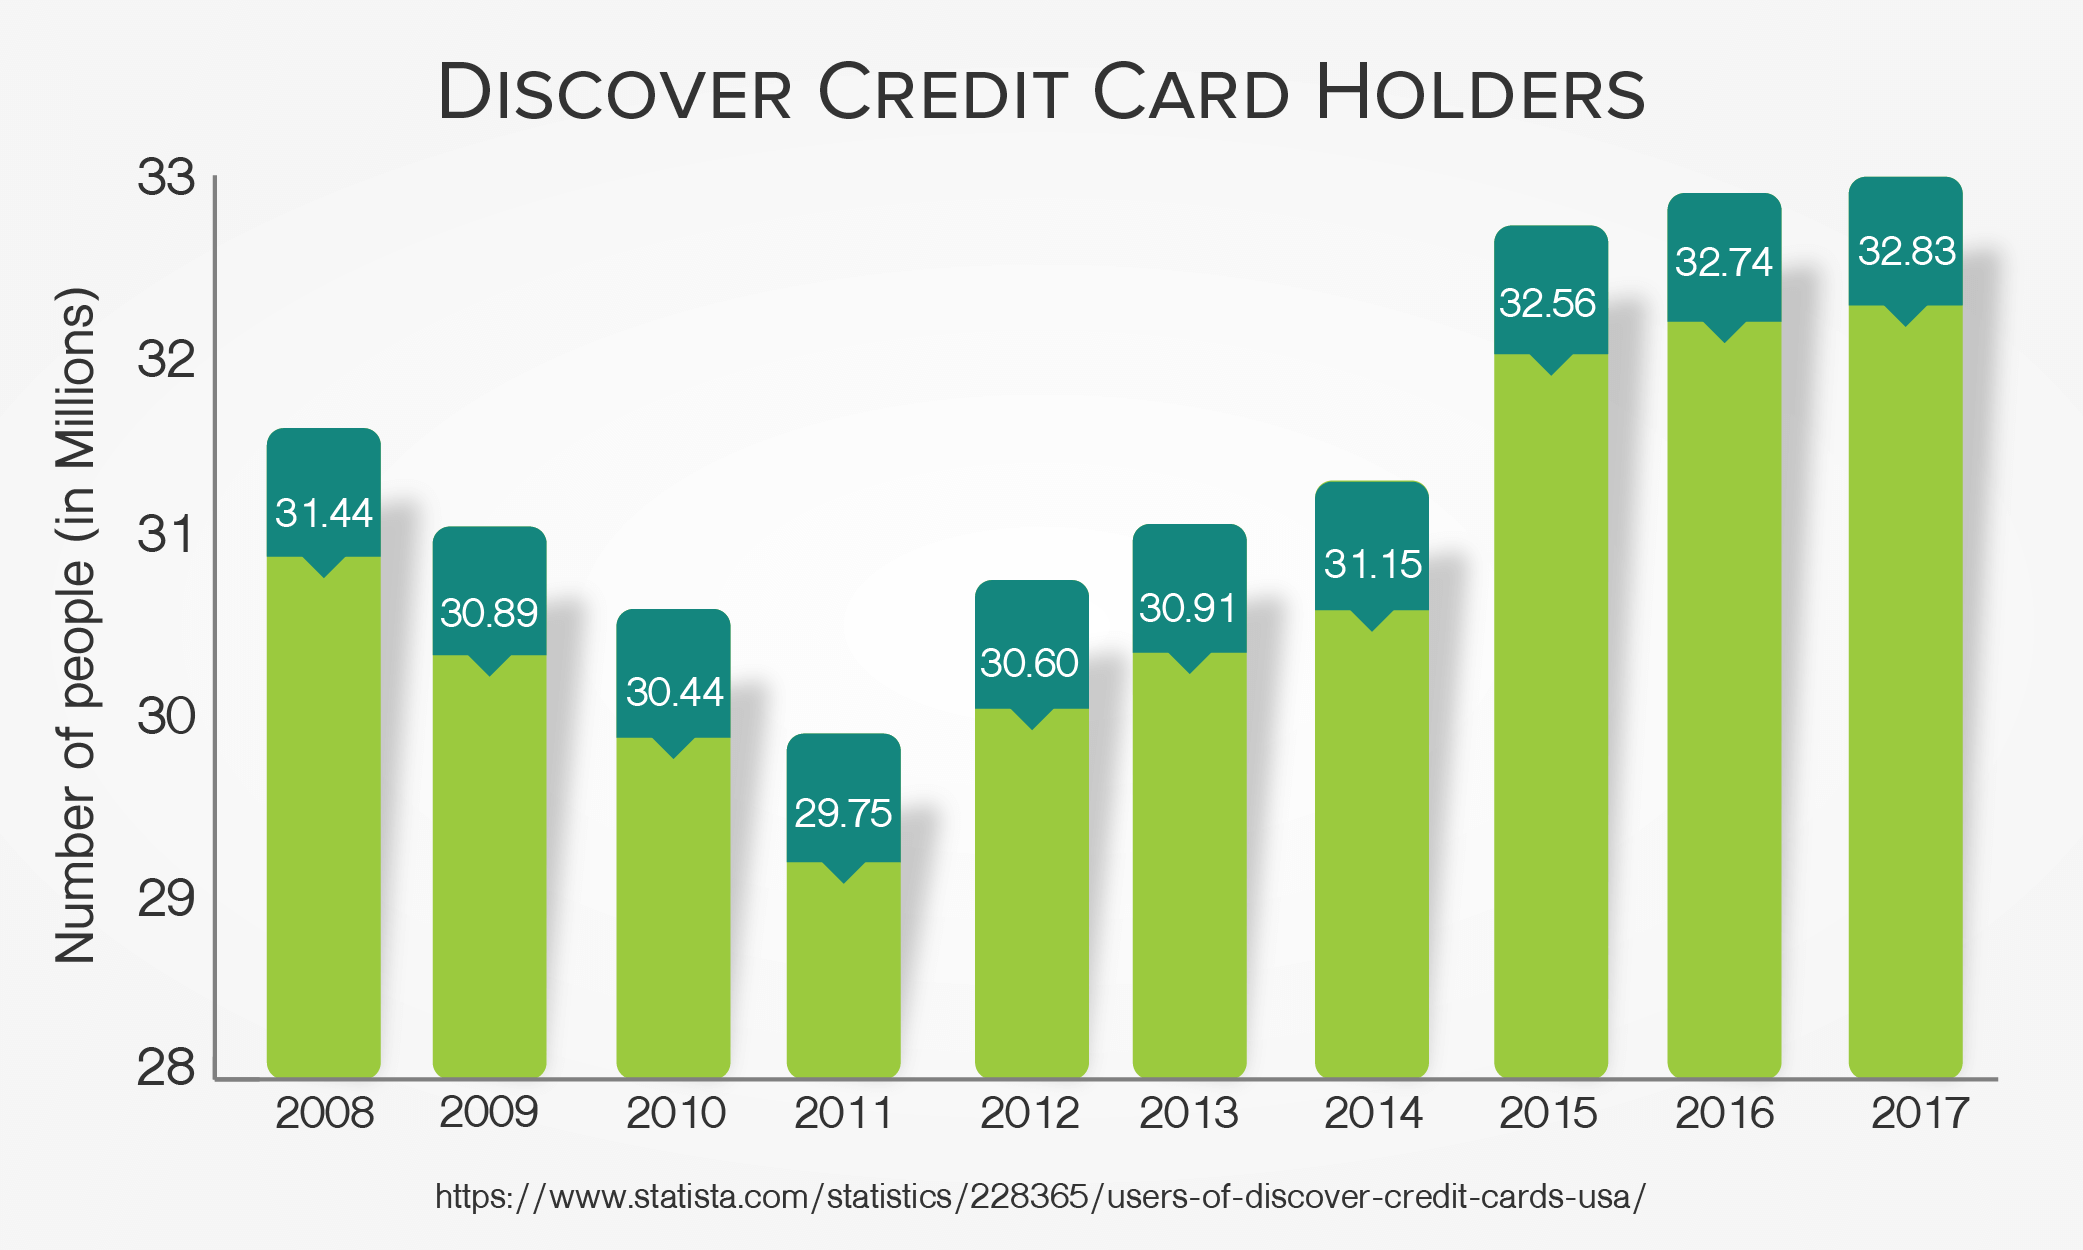 Discover Credit Card Holders